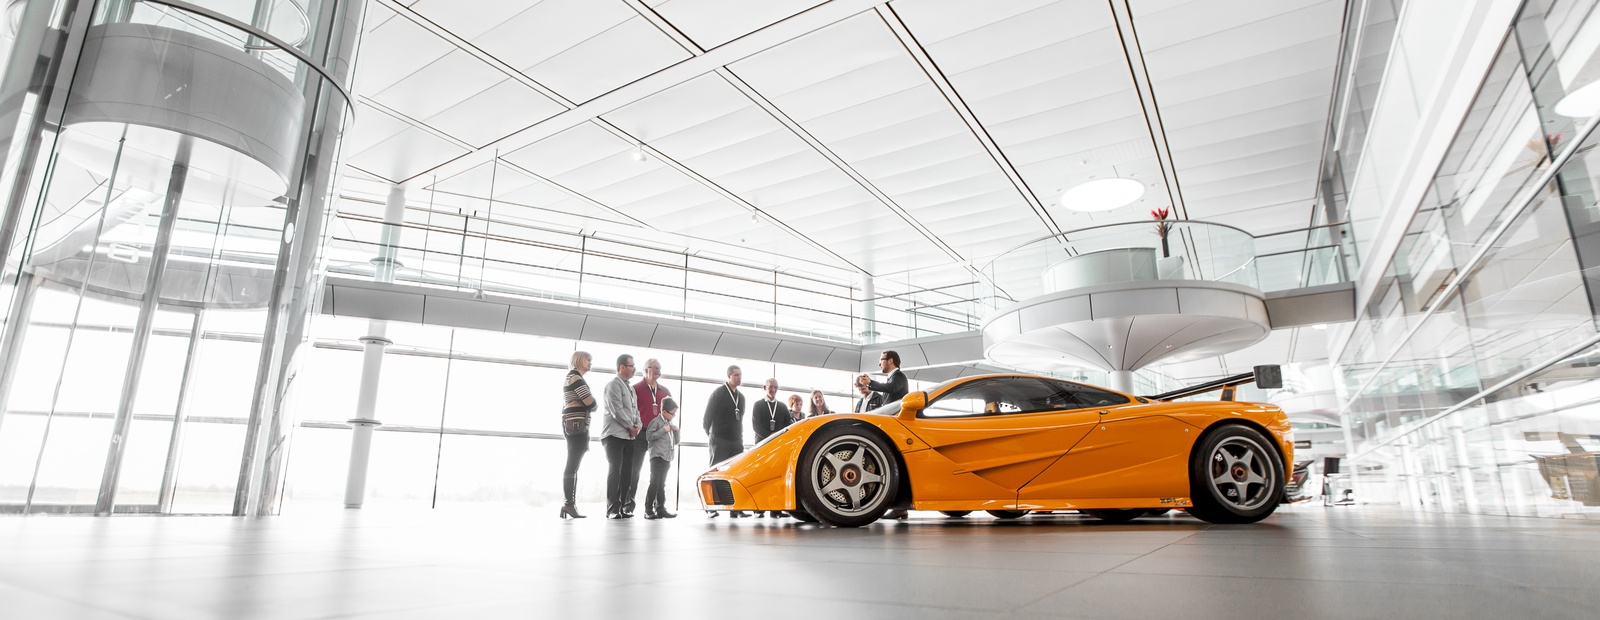 mclaren formula 1 - mclaren technology centre tour